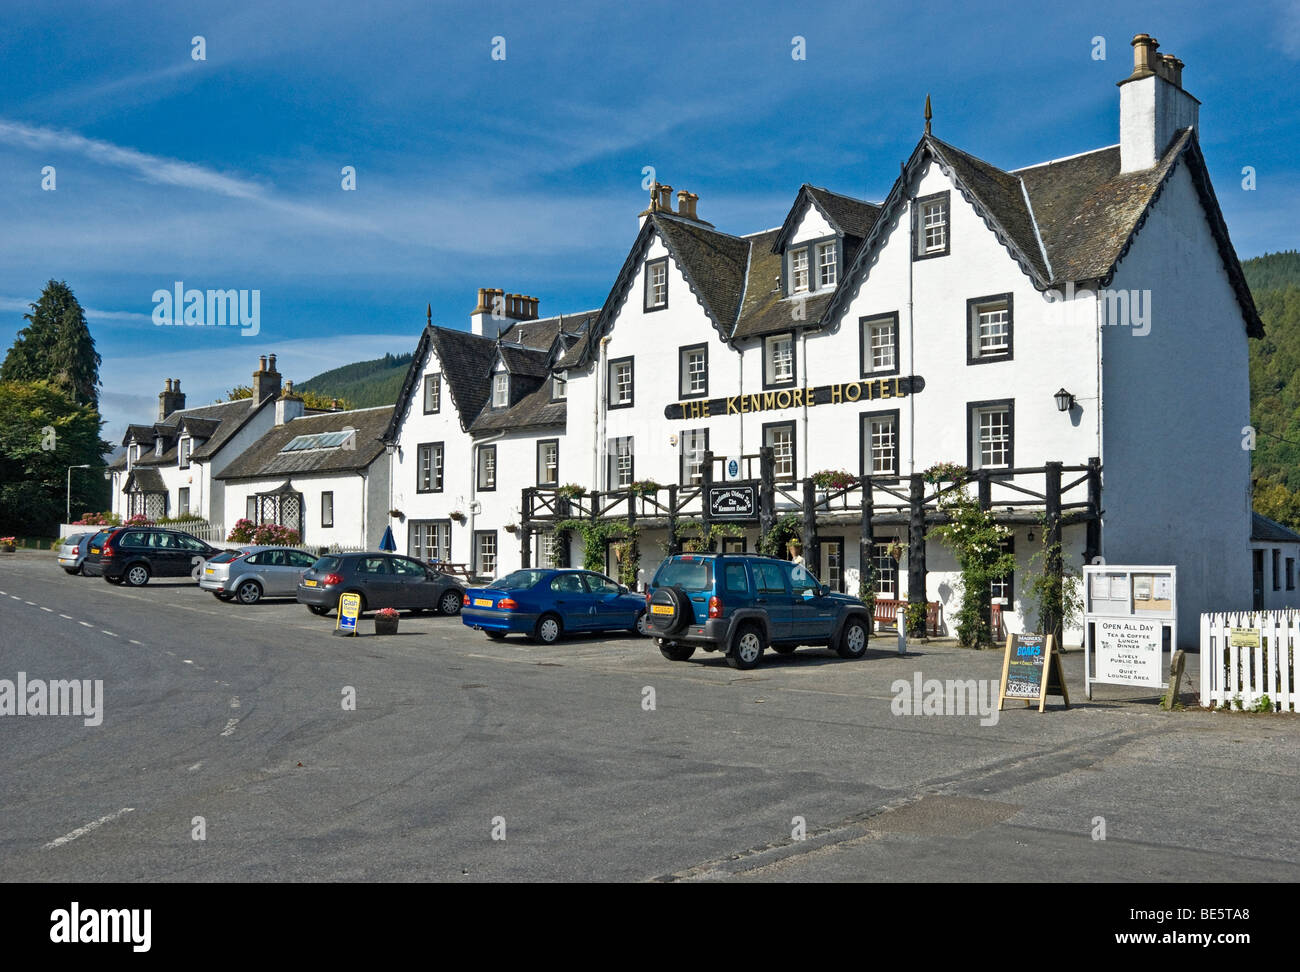 The Kenmore Hotel in Scottish village Kenmore on Loch Tay in Tayside Scotland - Stock Image